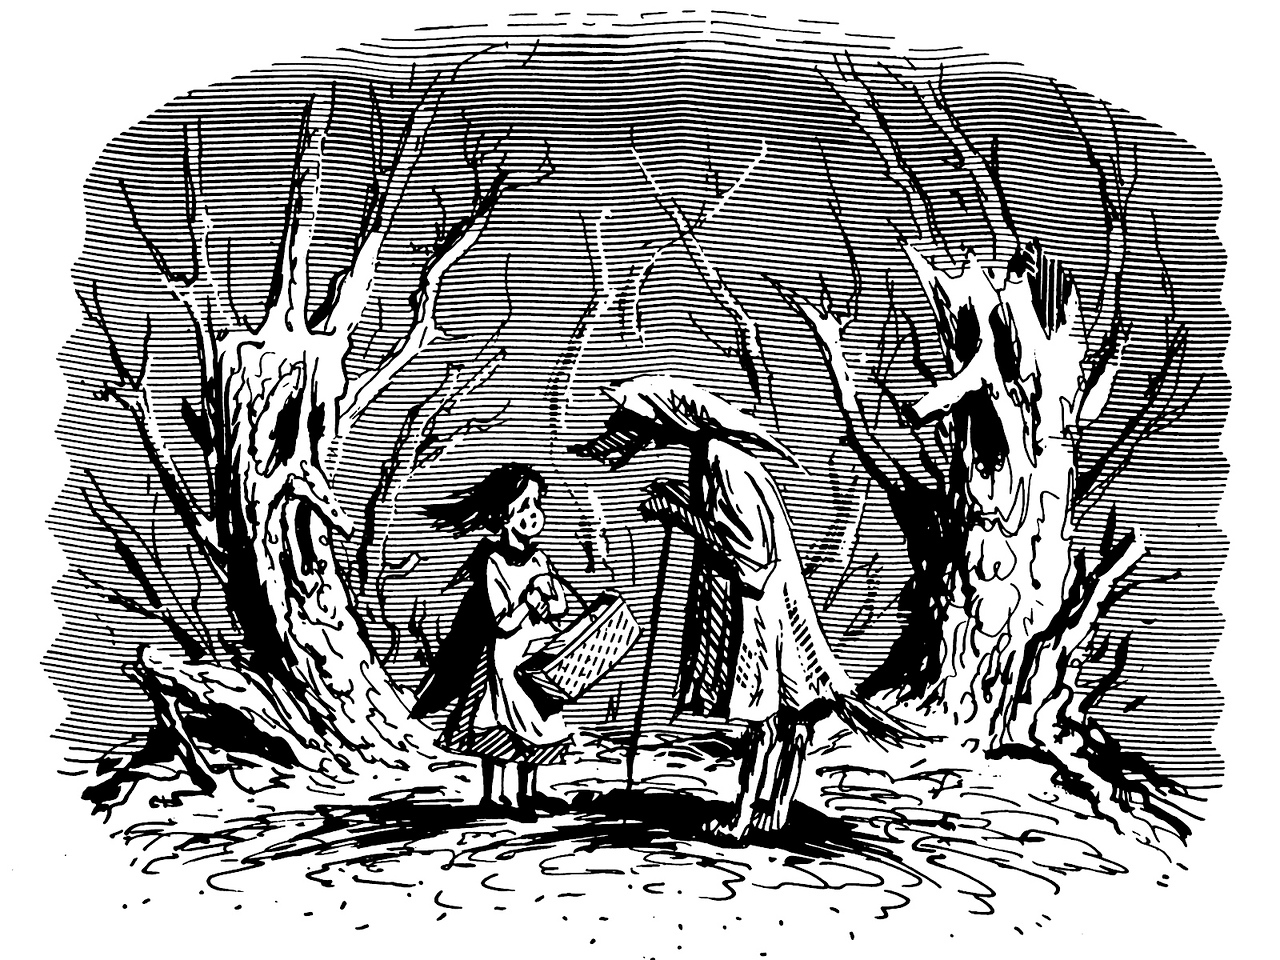 Fairytale scene; another Bookends drawing, c. 1983